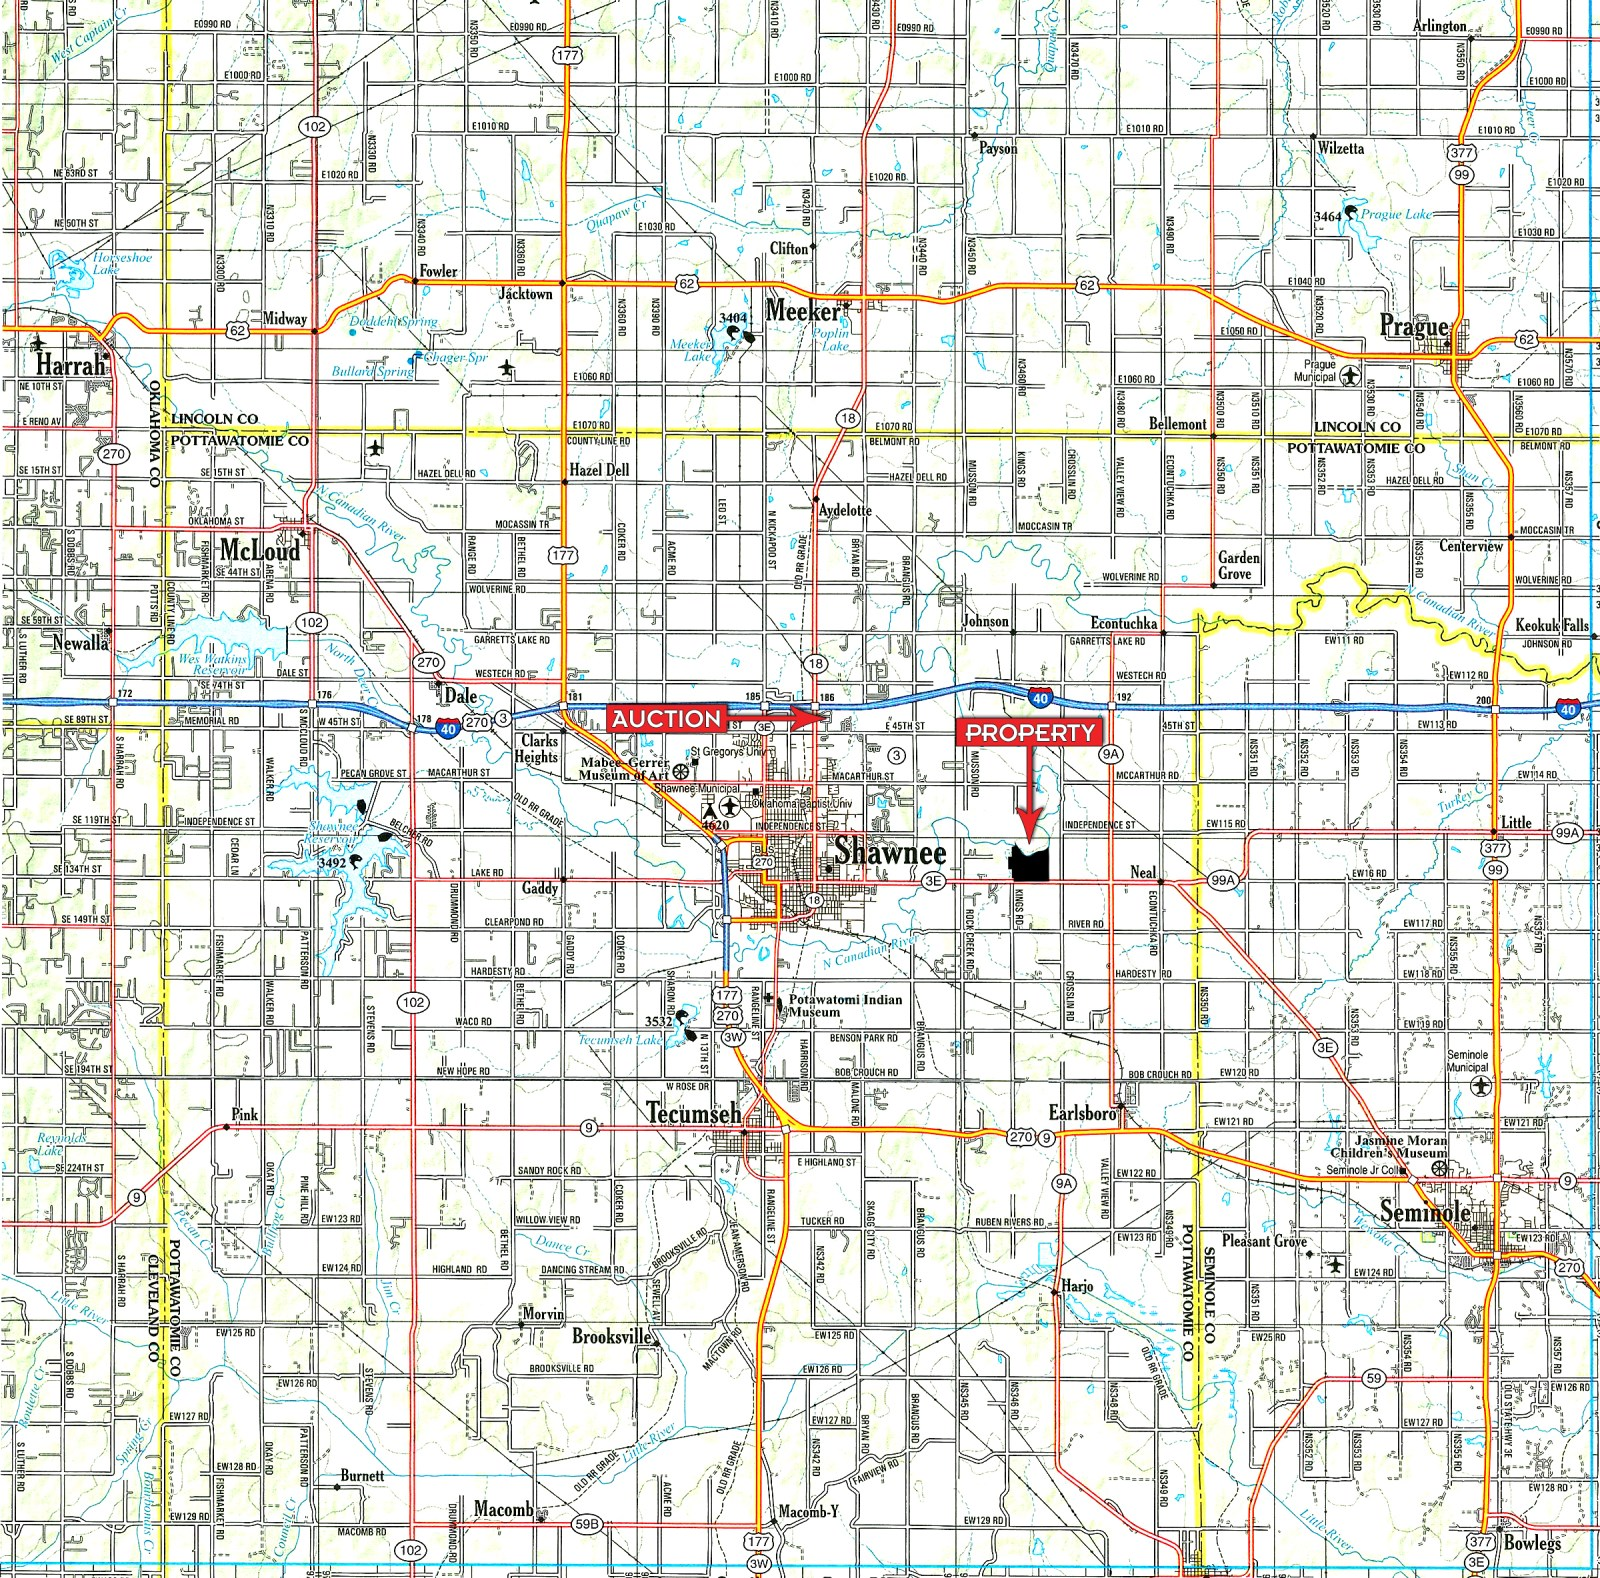 Land Auction In Oklahoma  Ranch Auction  Shawnee  Pottawatomie County  Oklahoma  RANCHFLIP